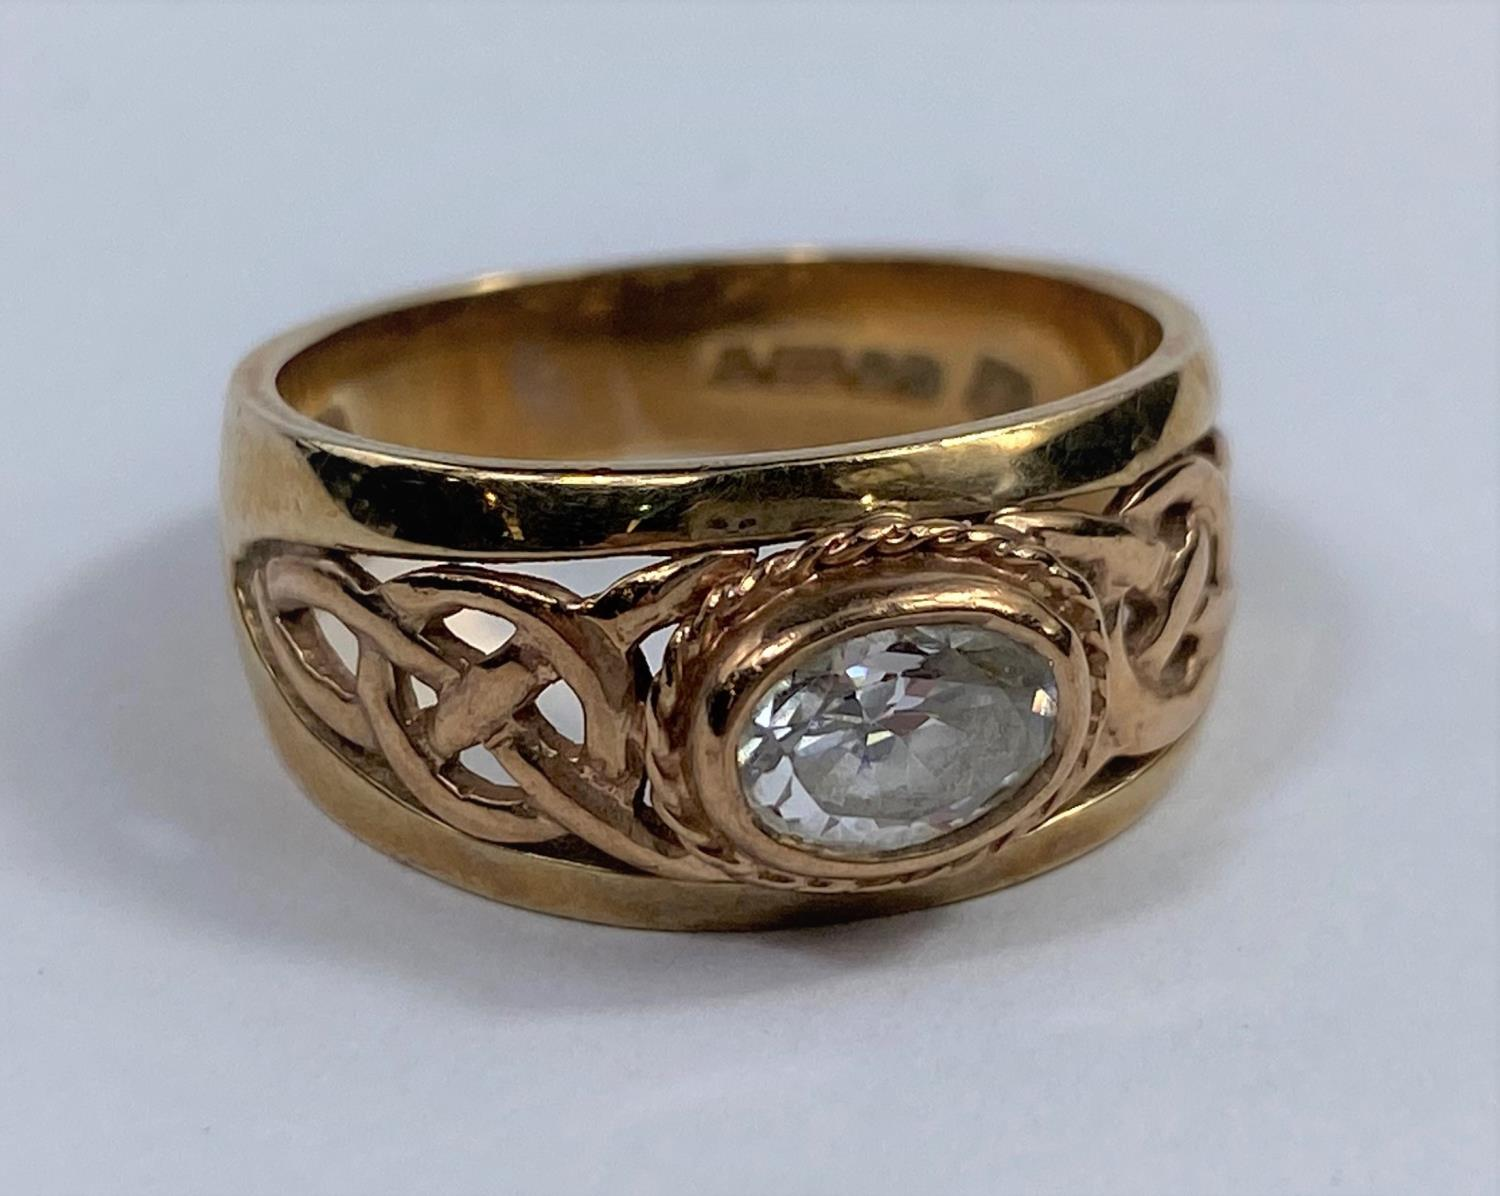 A 9 carat hallmarked gold period style ring set clear oval stone, the split shank with pierced - Image 5 of 5